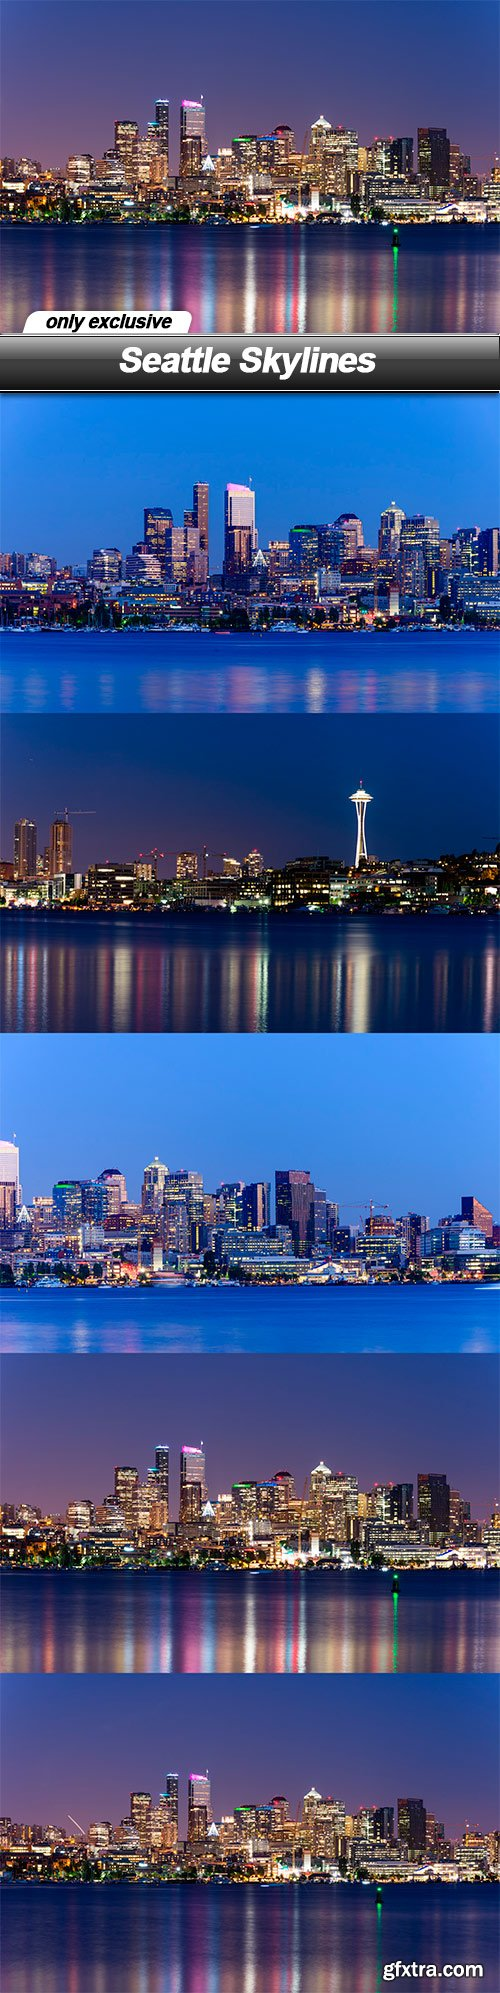 Seattle Skylines - 5 UHQ JPEG